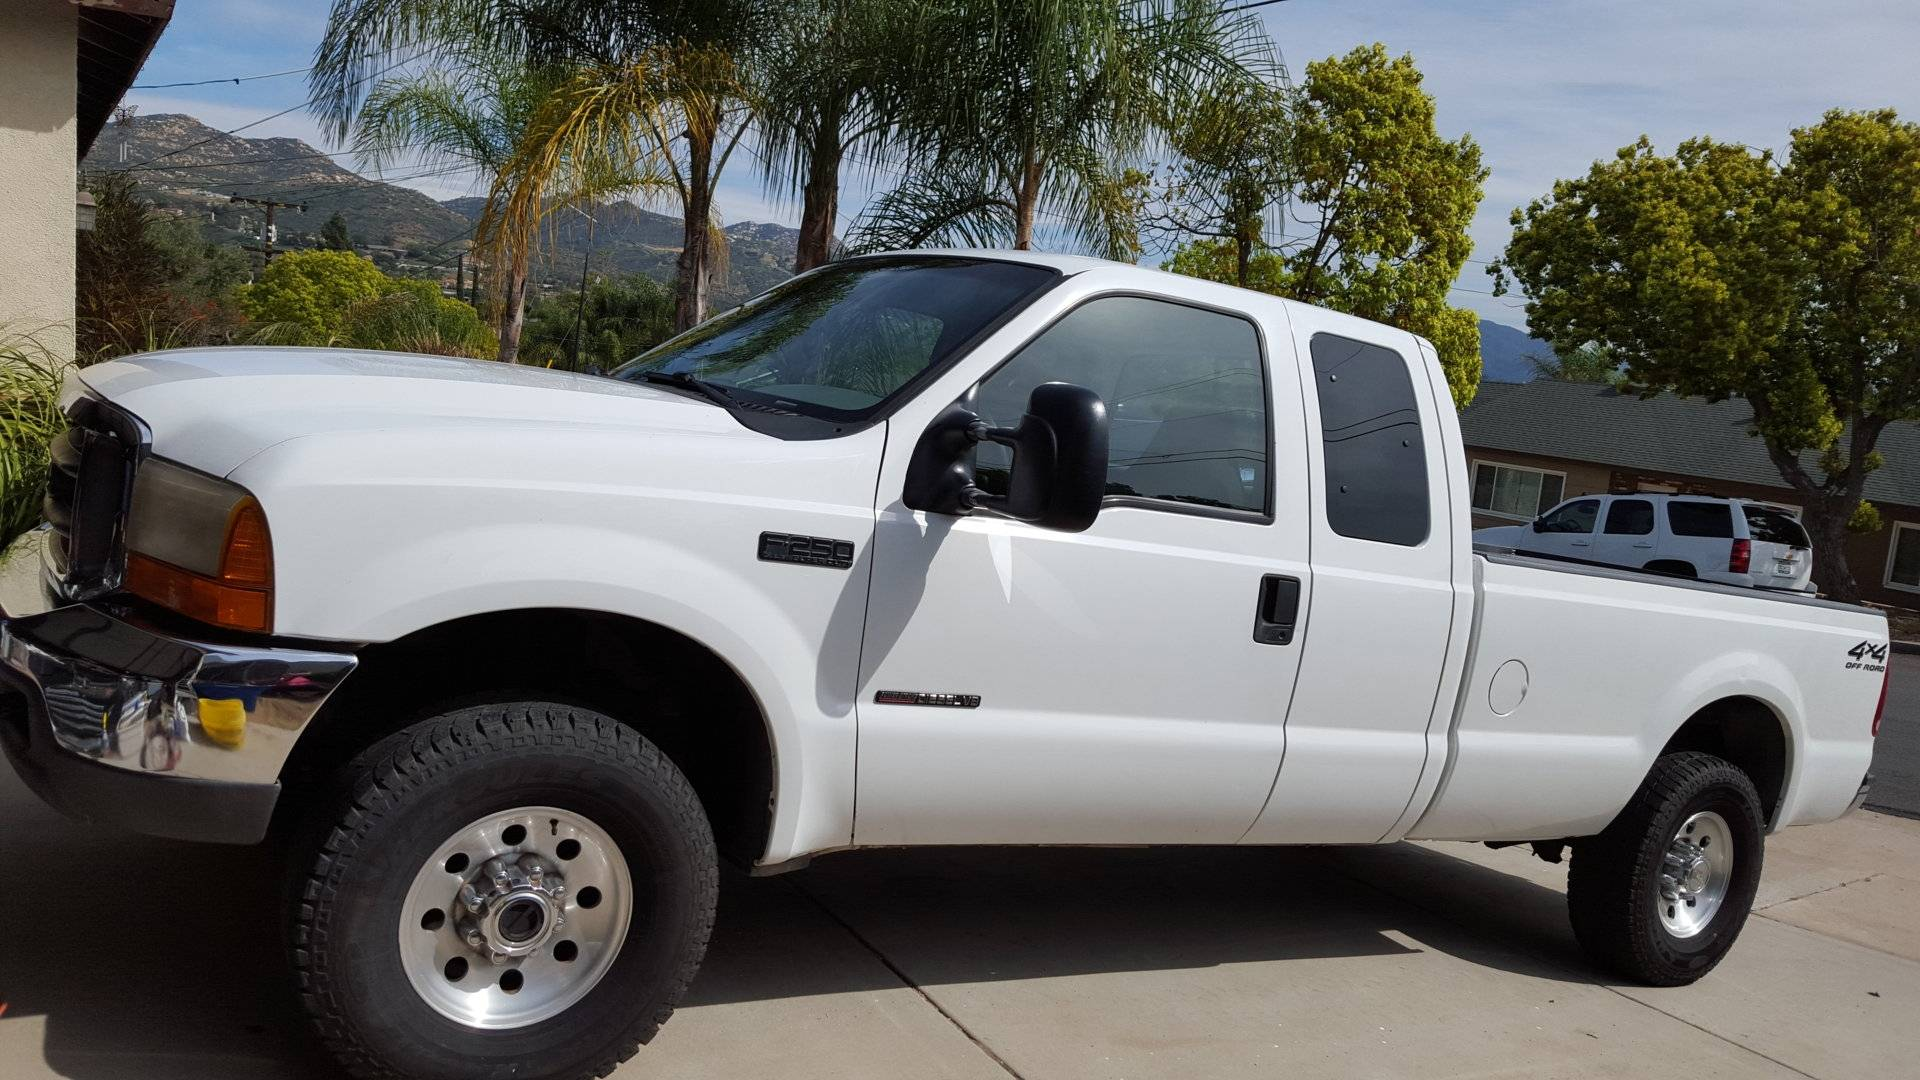 2000 Ford F250 Superduty 4wd 73 Bloodydecks Super Duty 20160305 134533